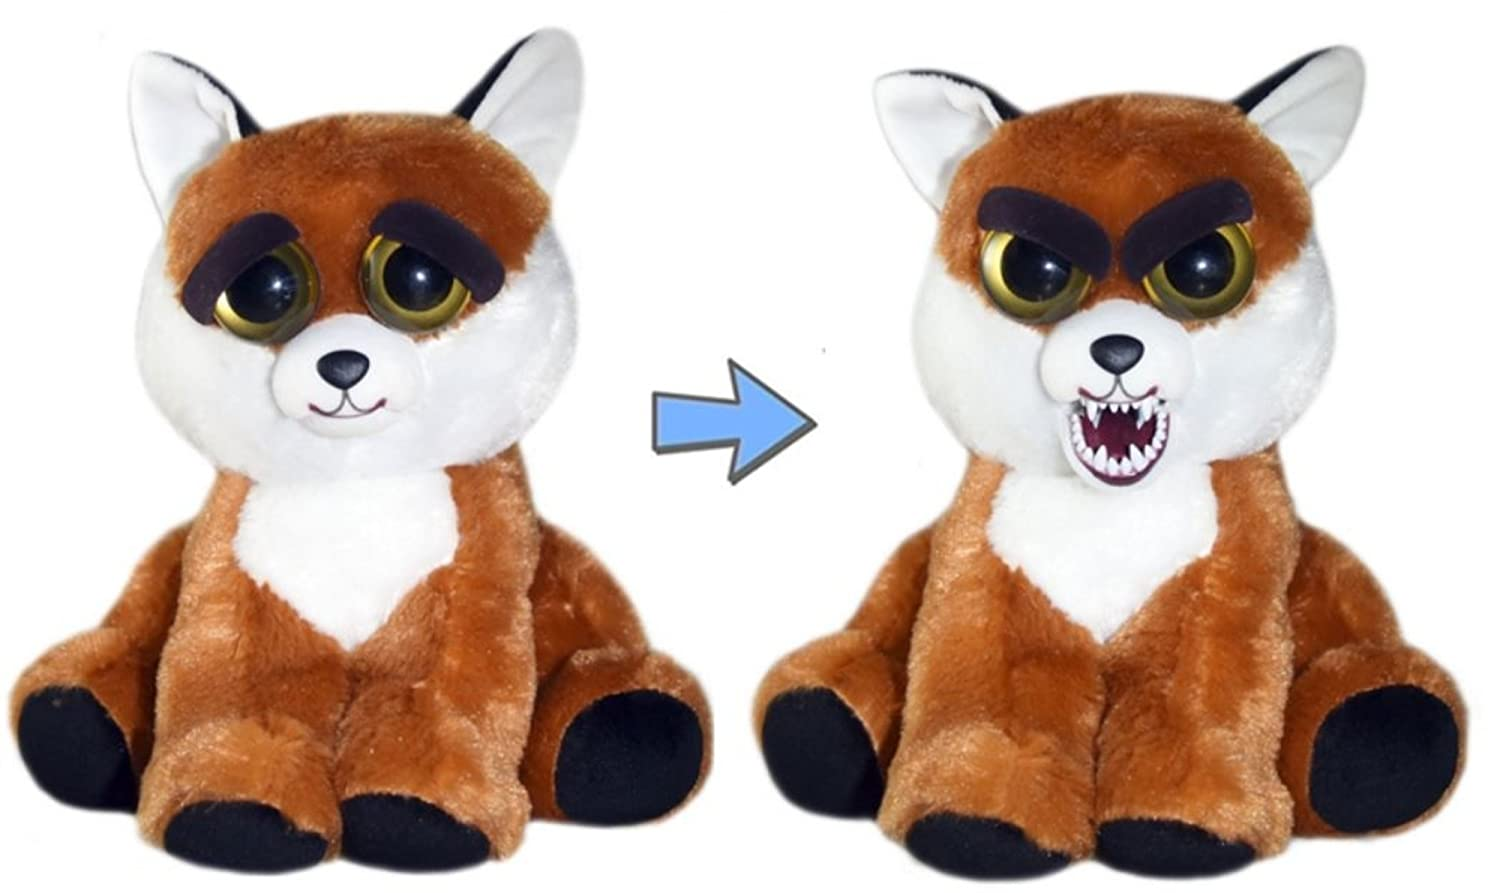 Feisty Pets William Mark Sly Sissypants Adorable 8.5 Plush Stuffed Fox That Turns Feisty with A Squeeze